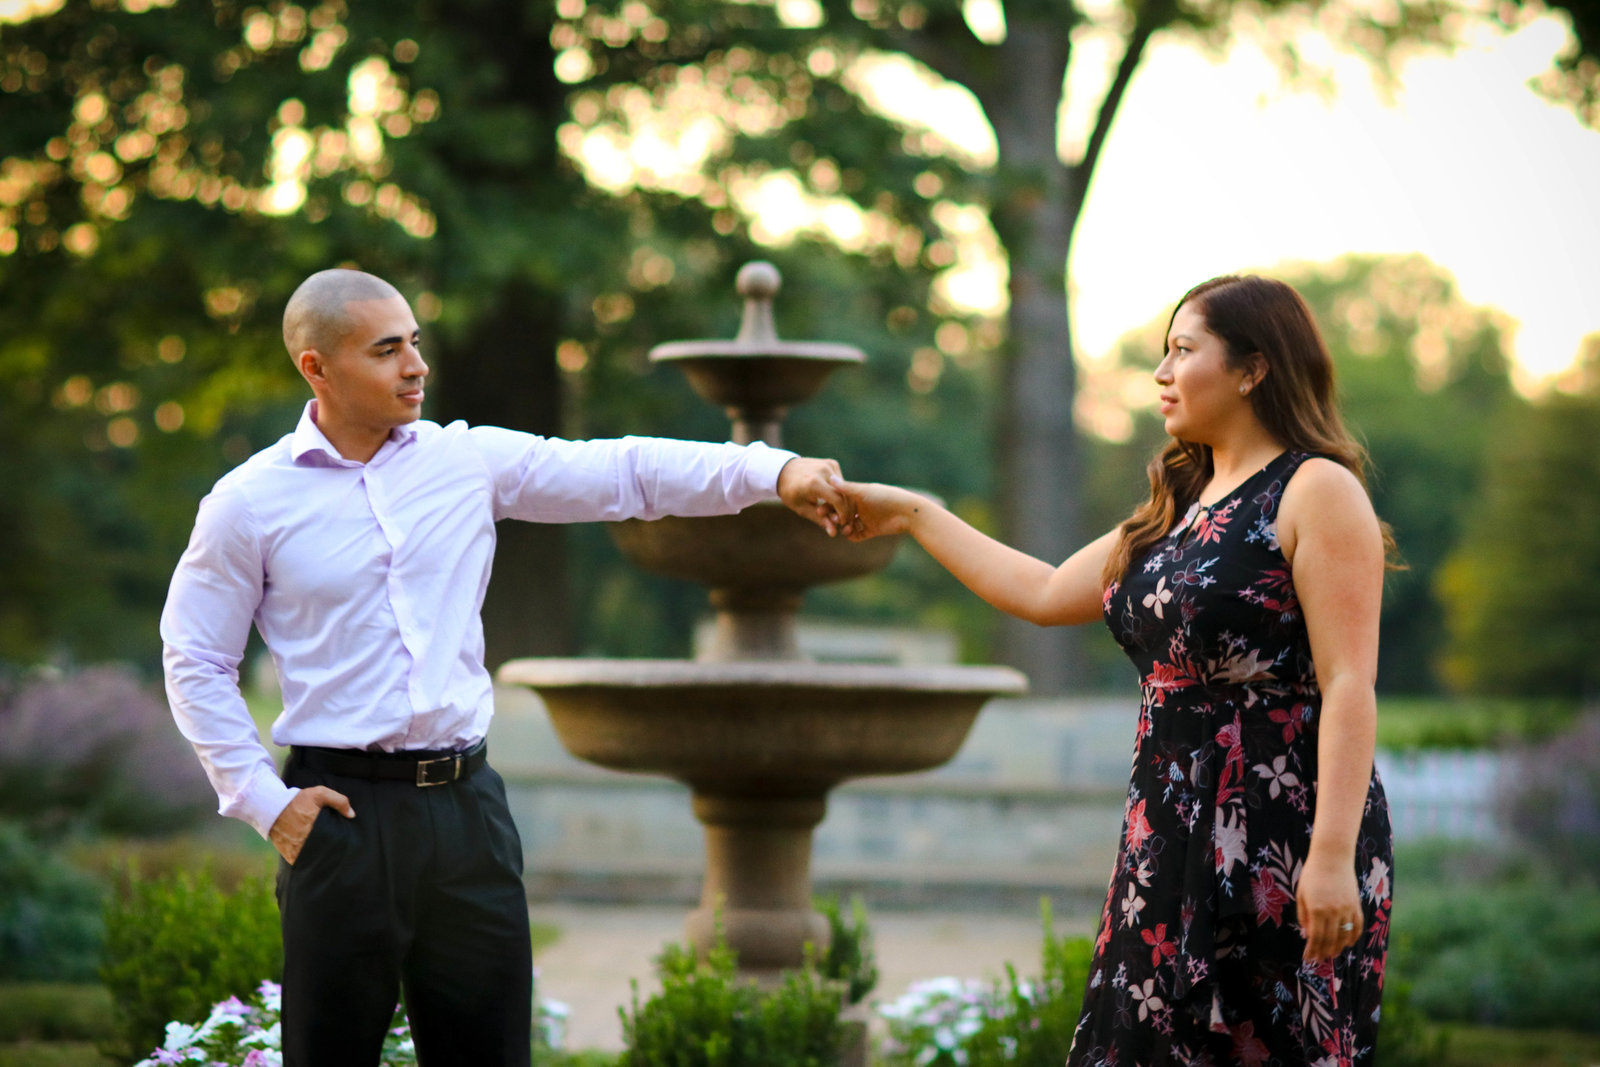 warinanco-park-engagement-photos-eveliophoto-119